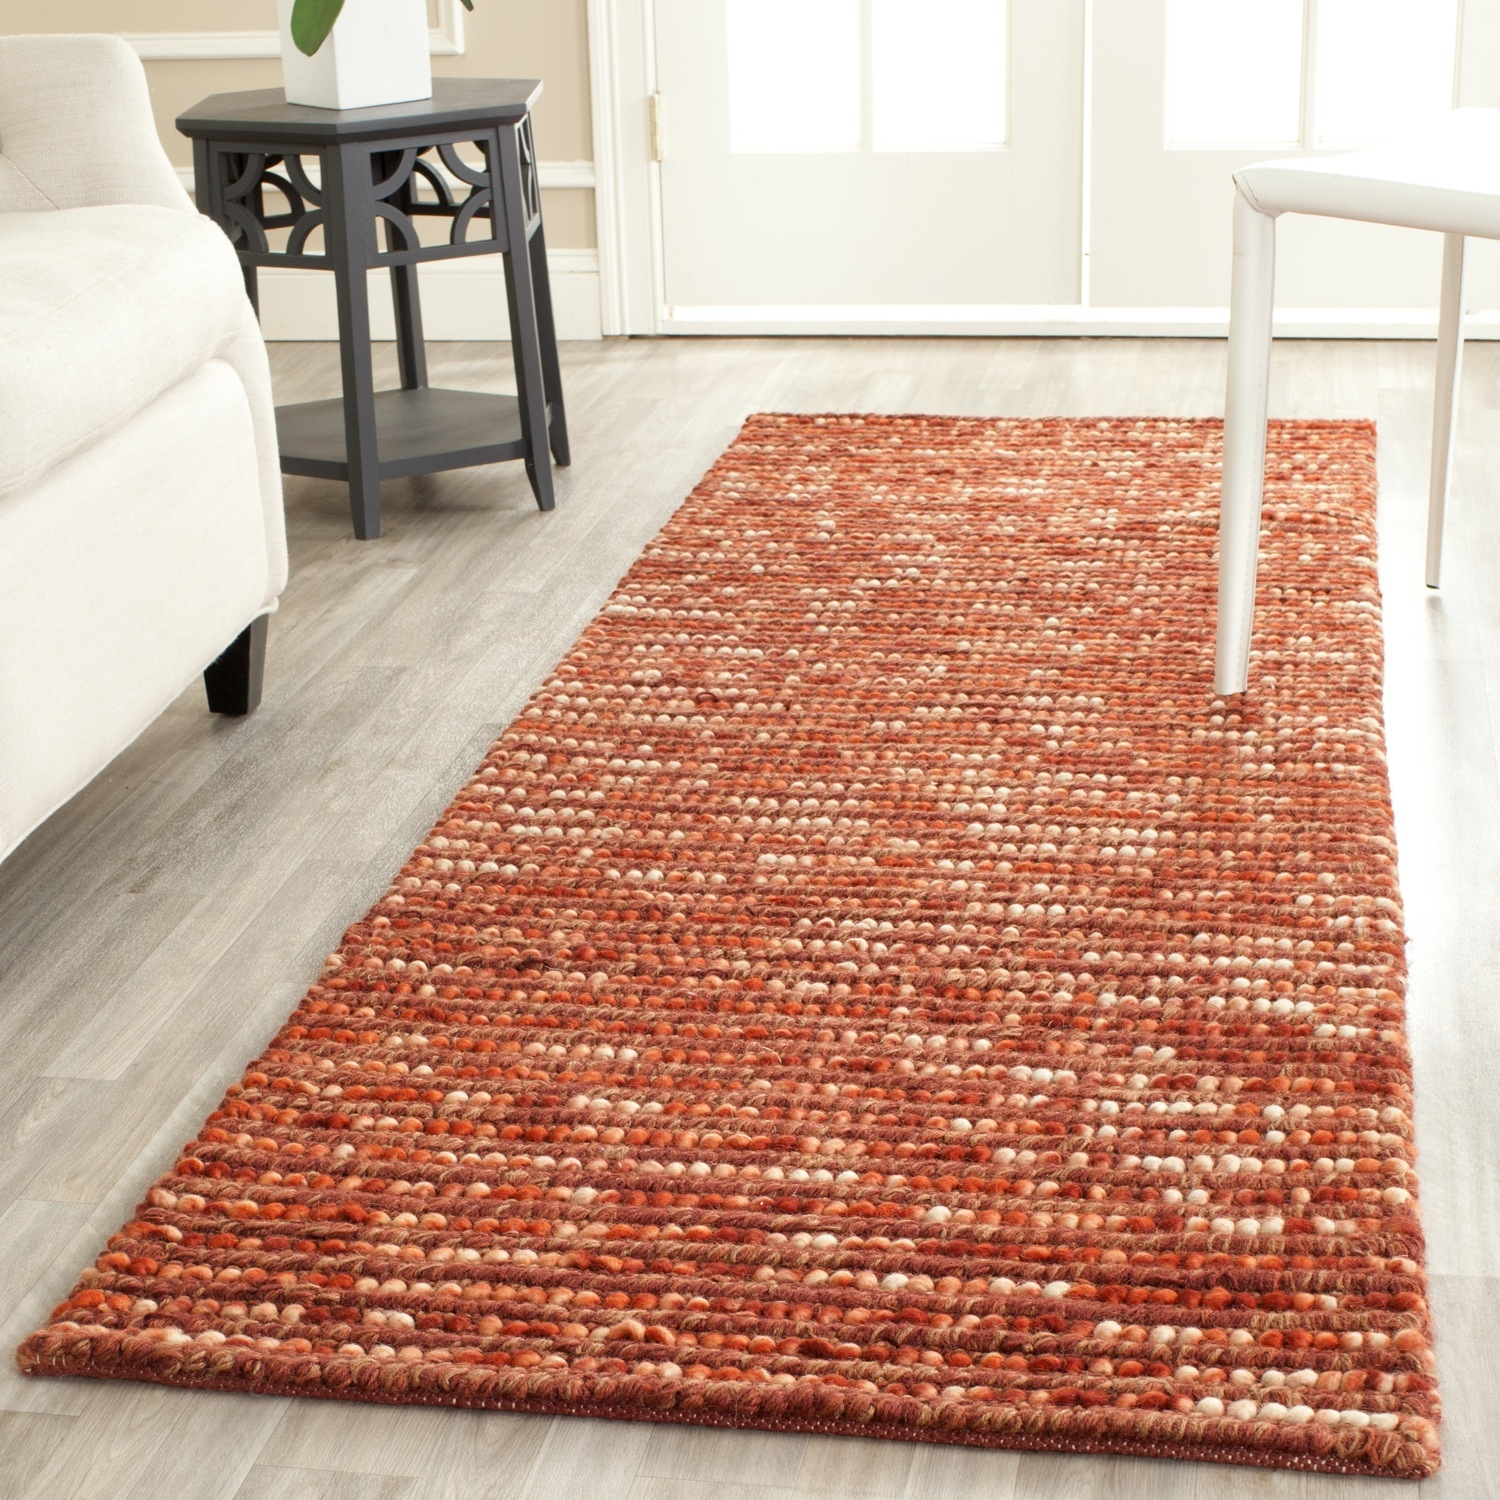 Wool Jute Area Rugs Roselawnlutheran Intended For Jute And Wool Area Rugs (View 7 of 7)